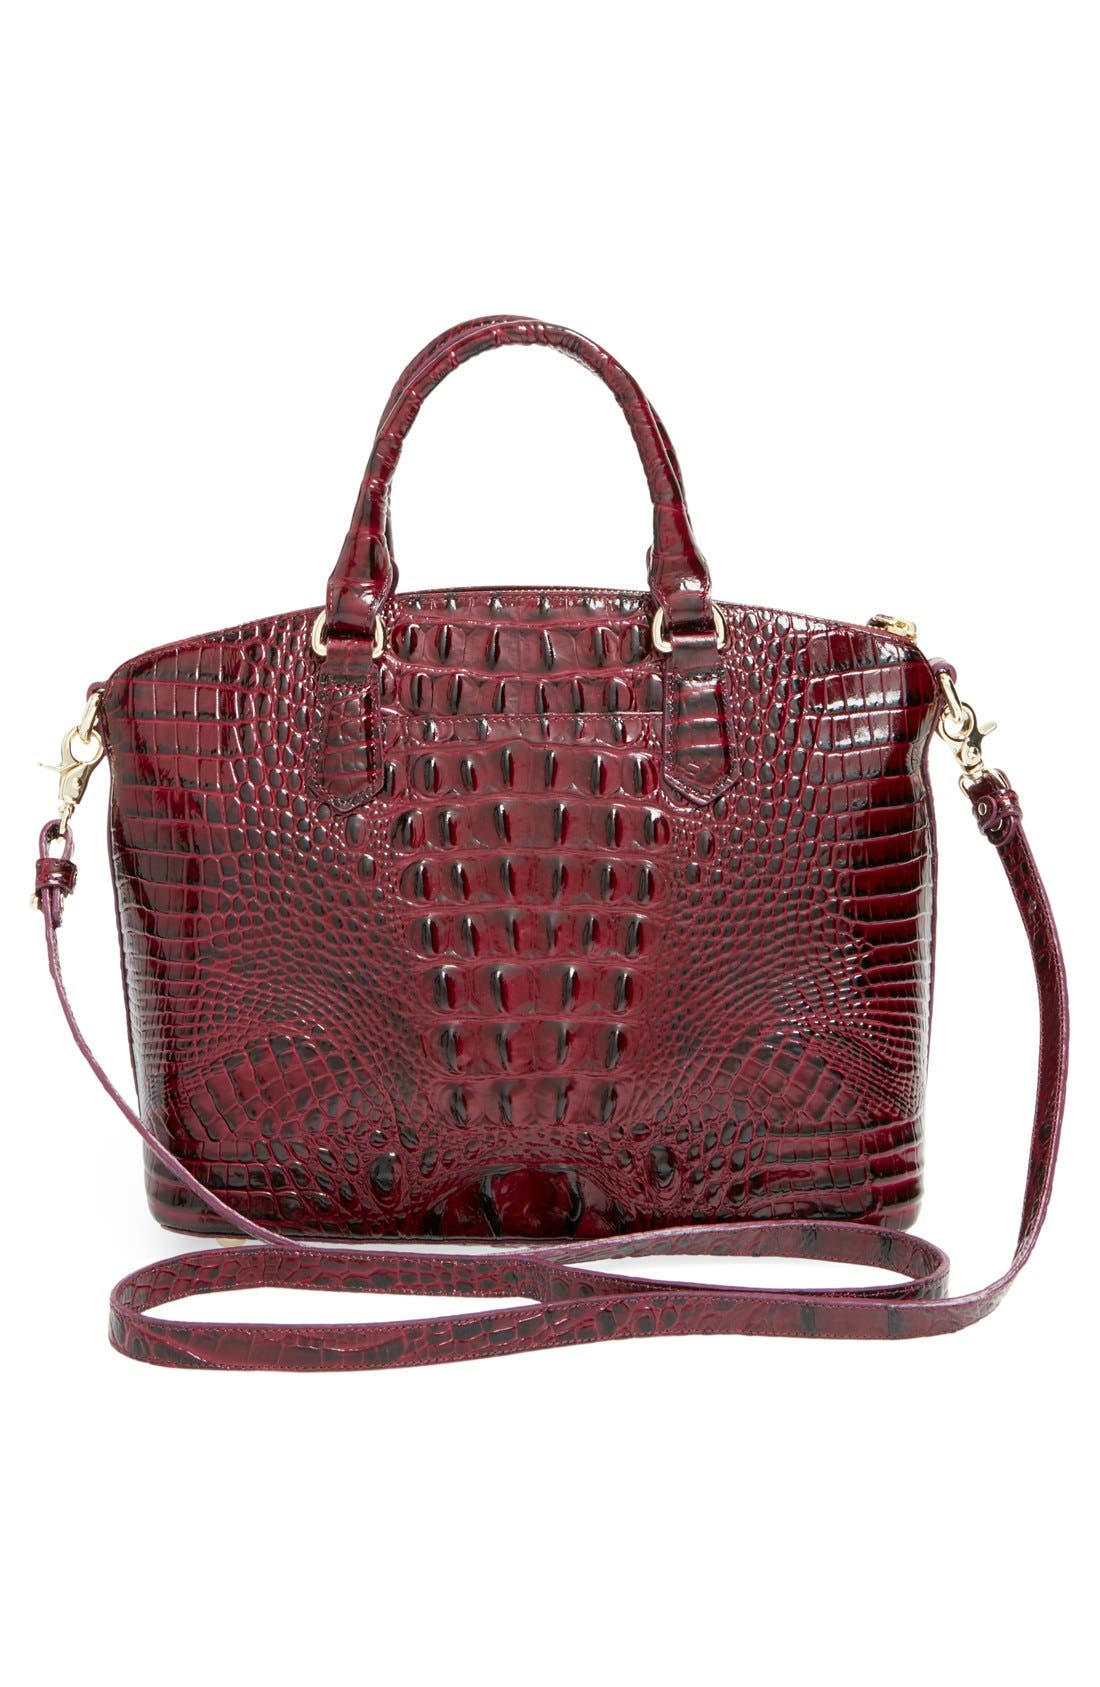 'Medium Duxbury' Croc Embossed Leather Satchel,                             Alternate thumbnail 102, color,